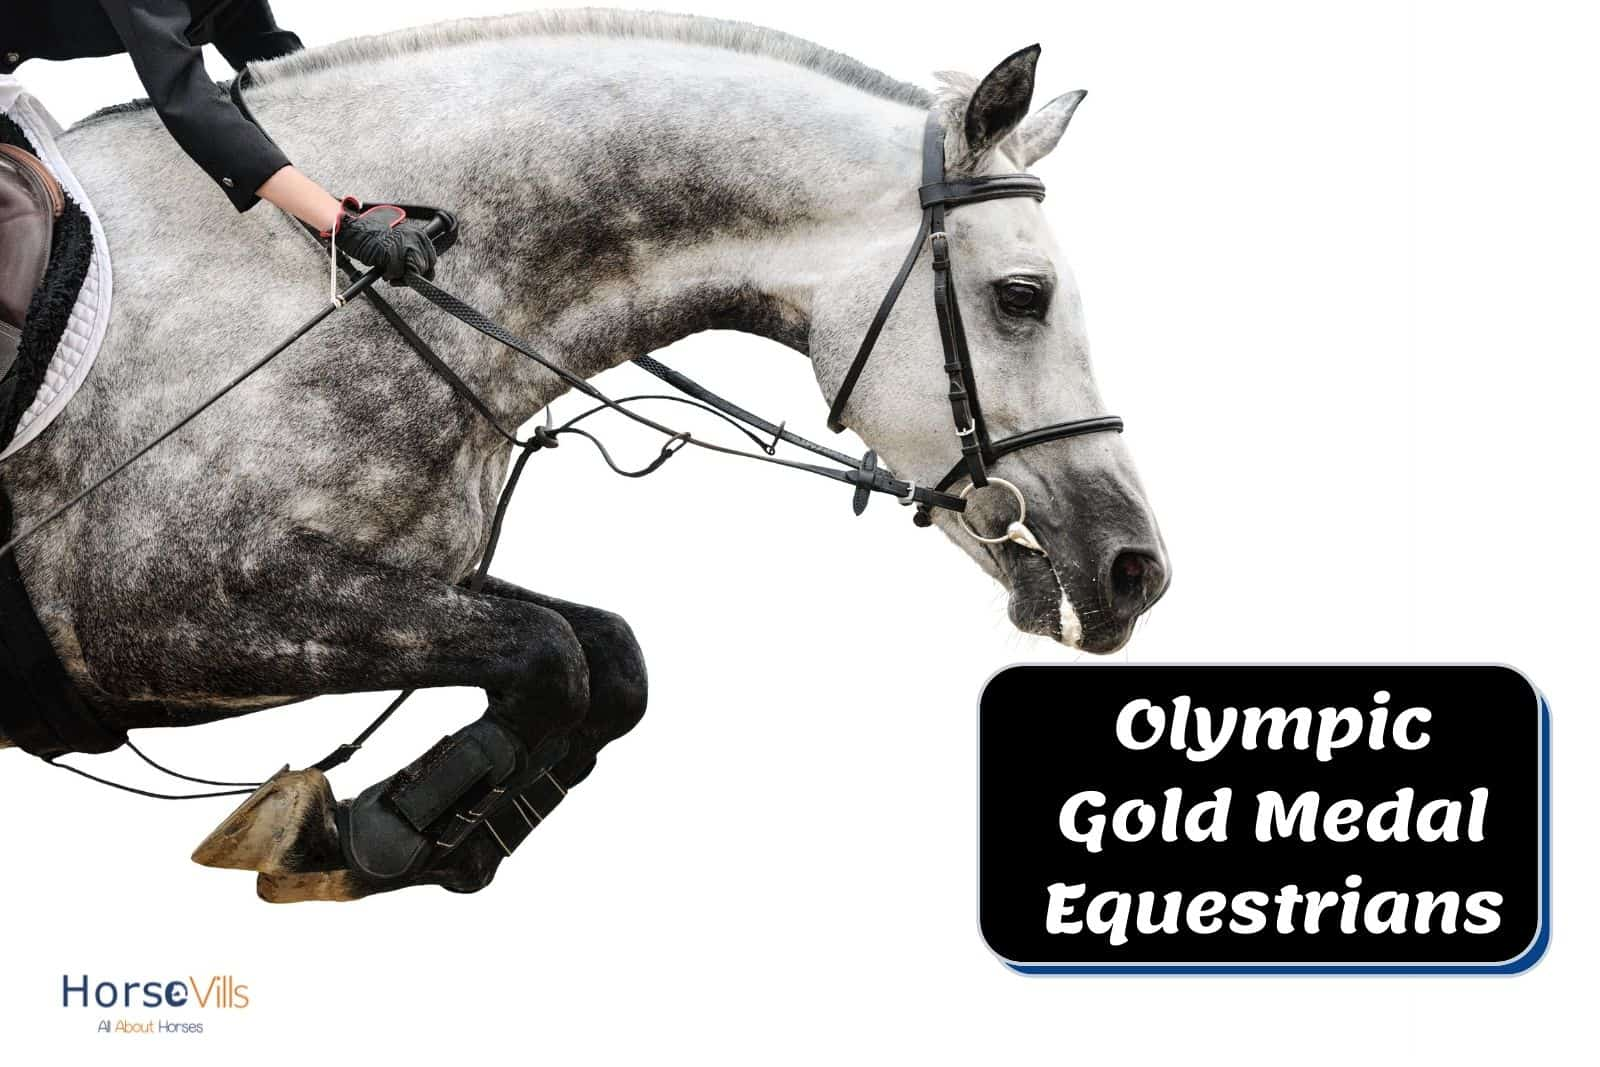 an Olympic gold medal equestrian riding a dappled gray horse for showjumping event